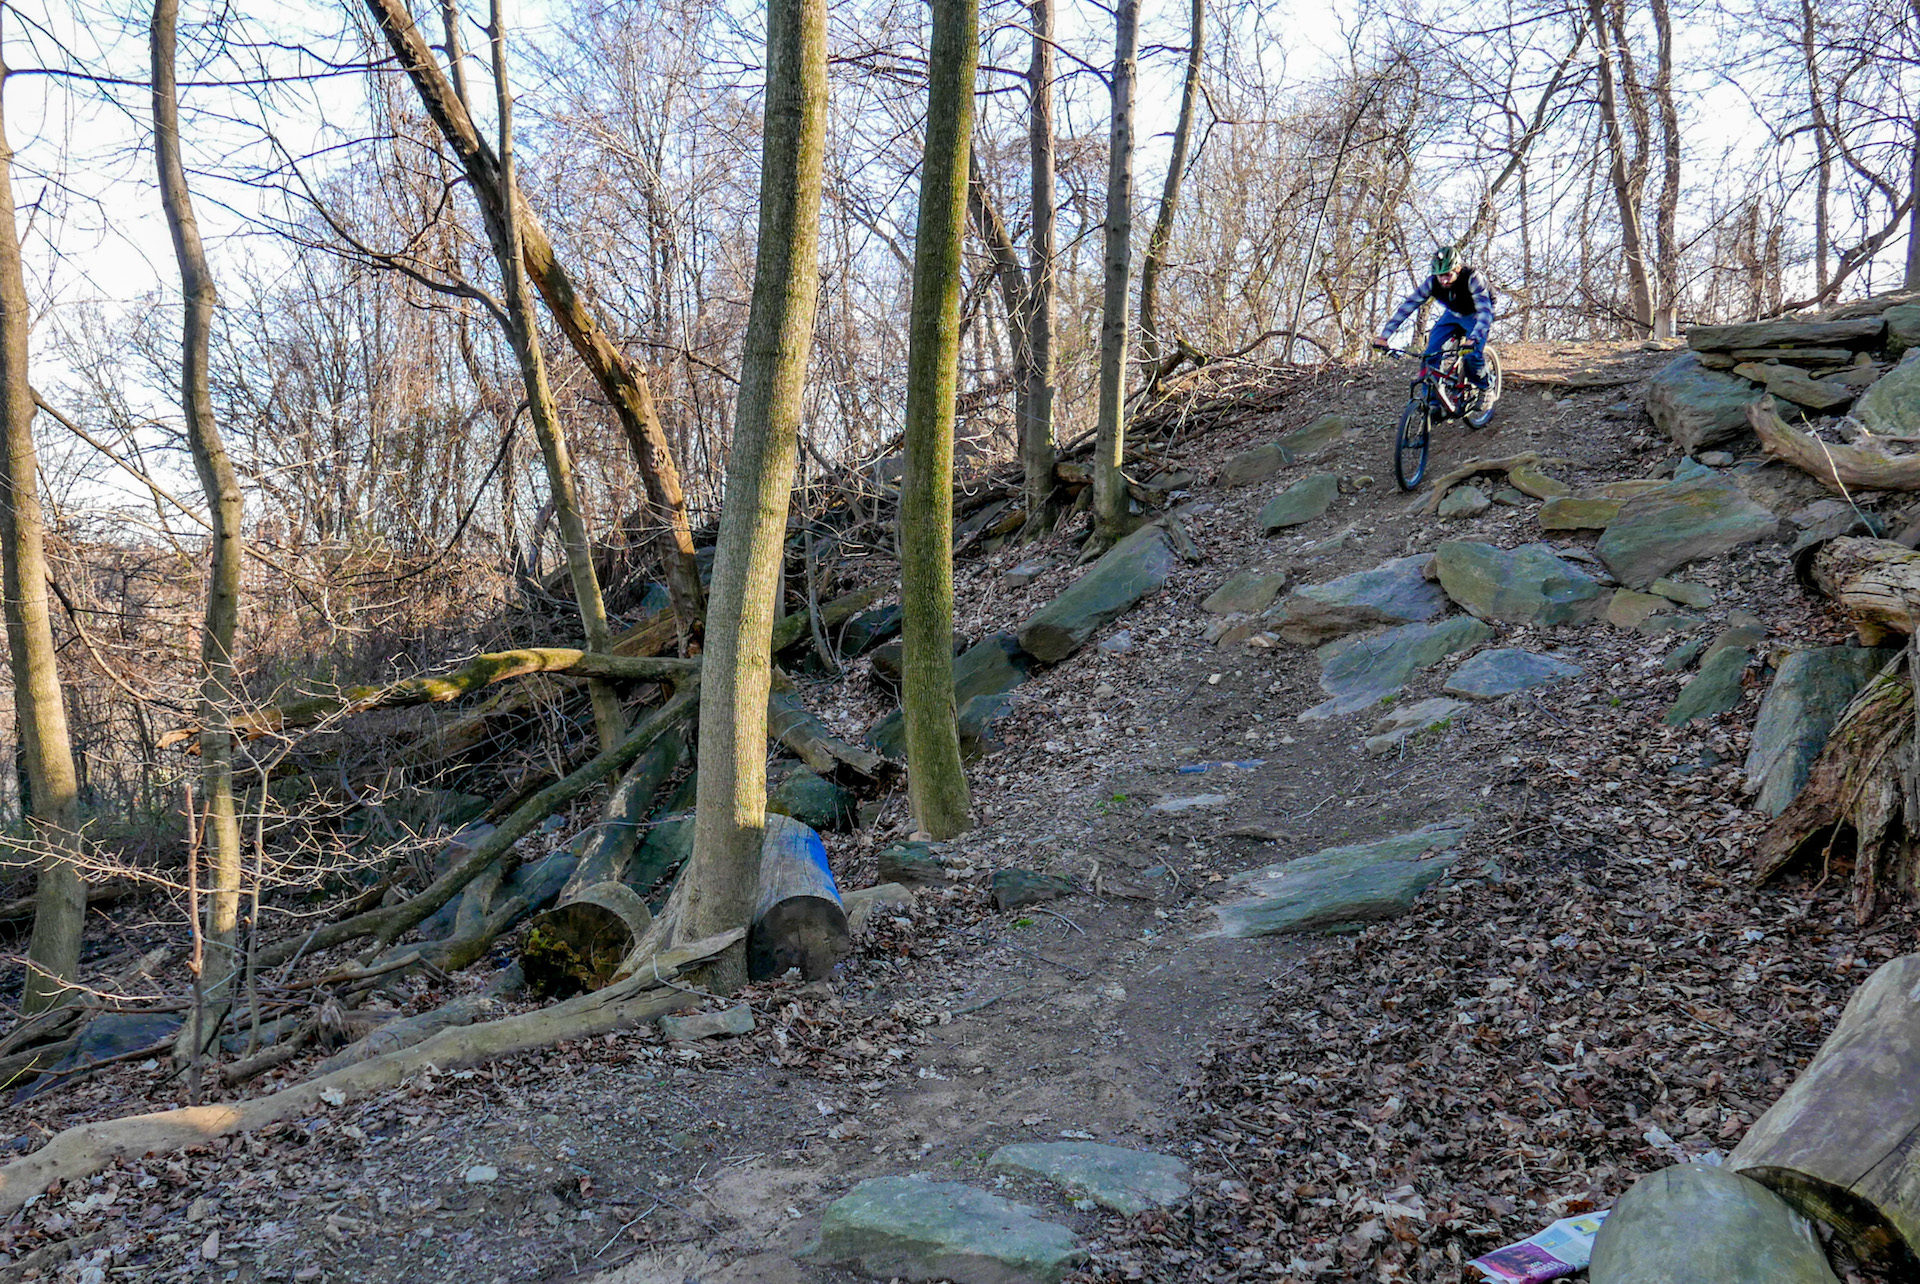 There are some quality descents on Fort George Hill.